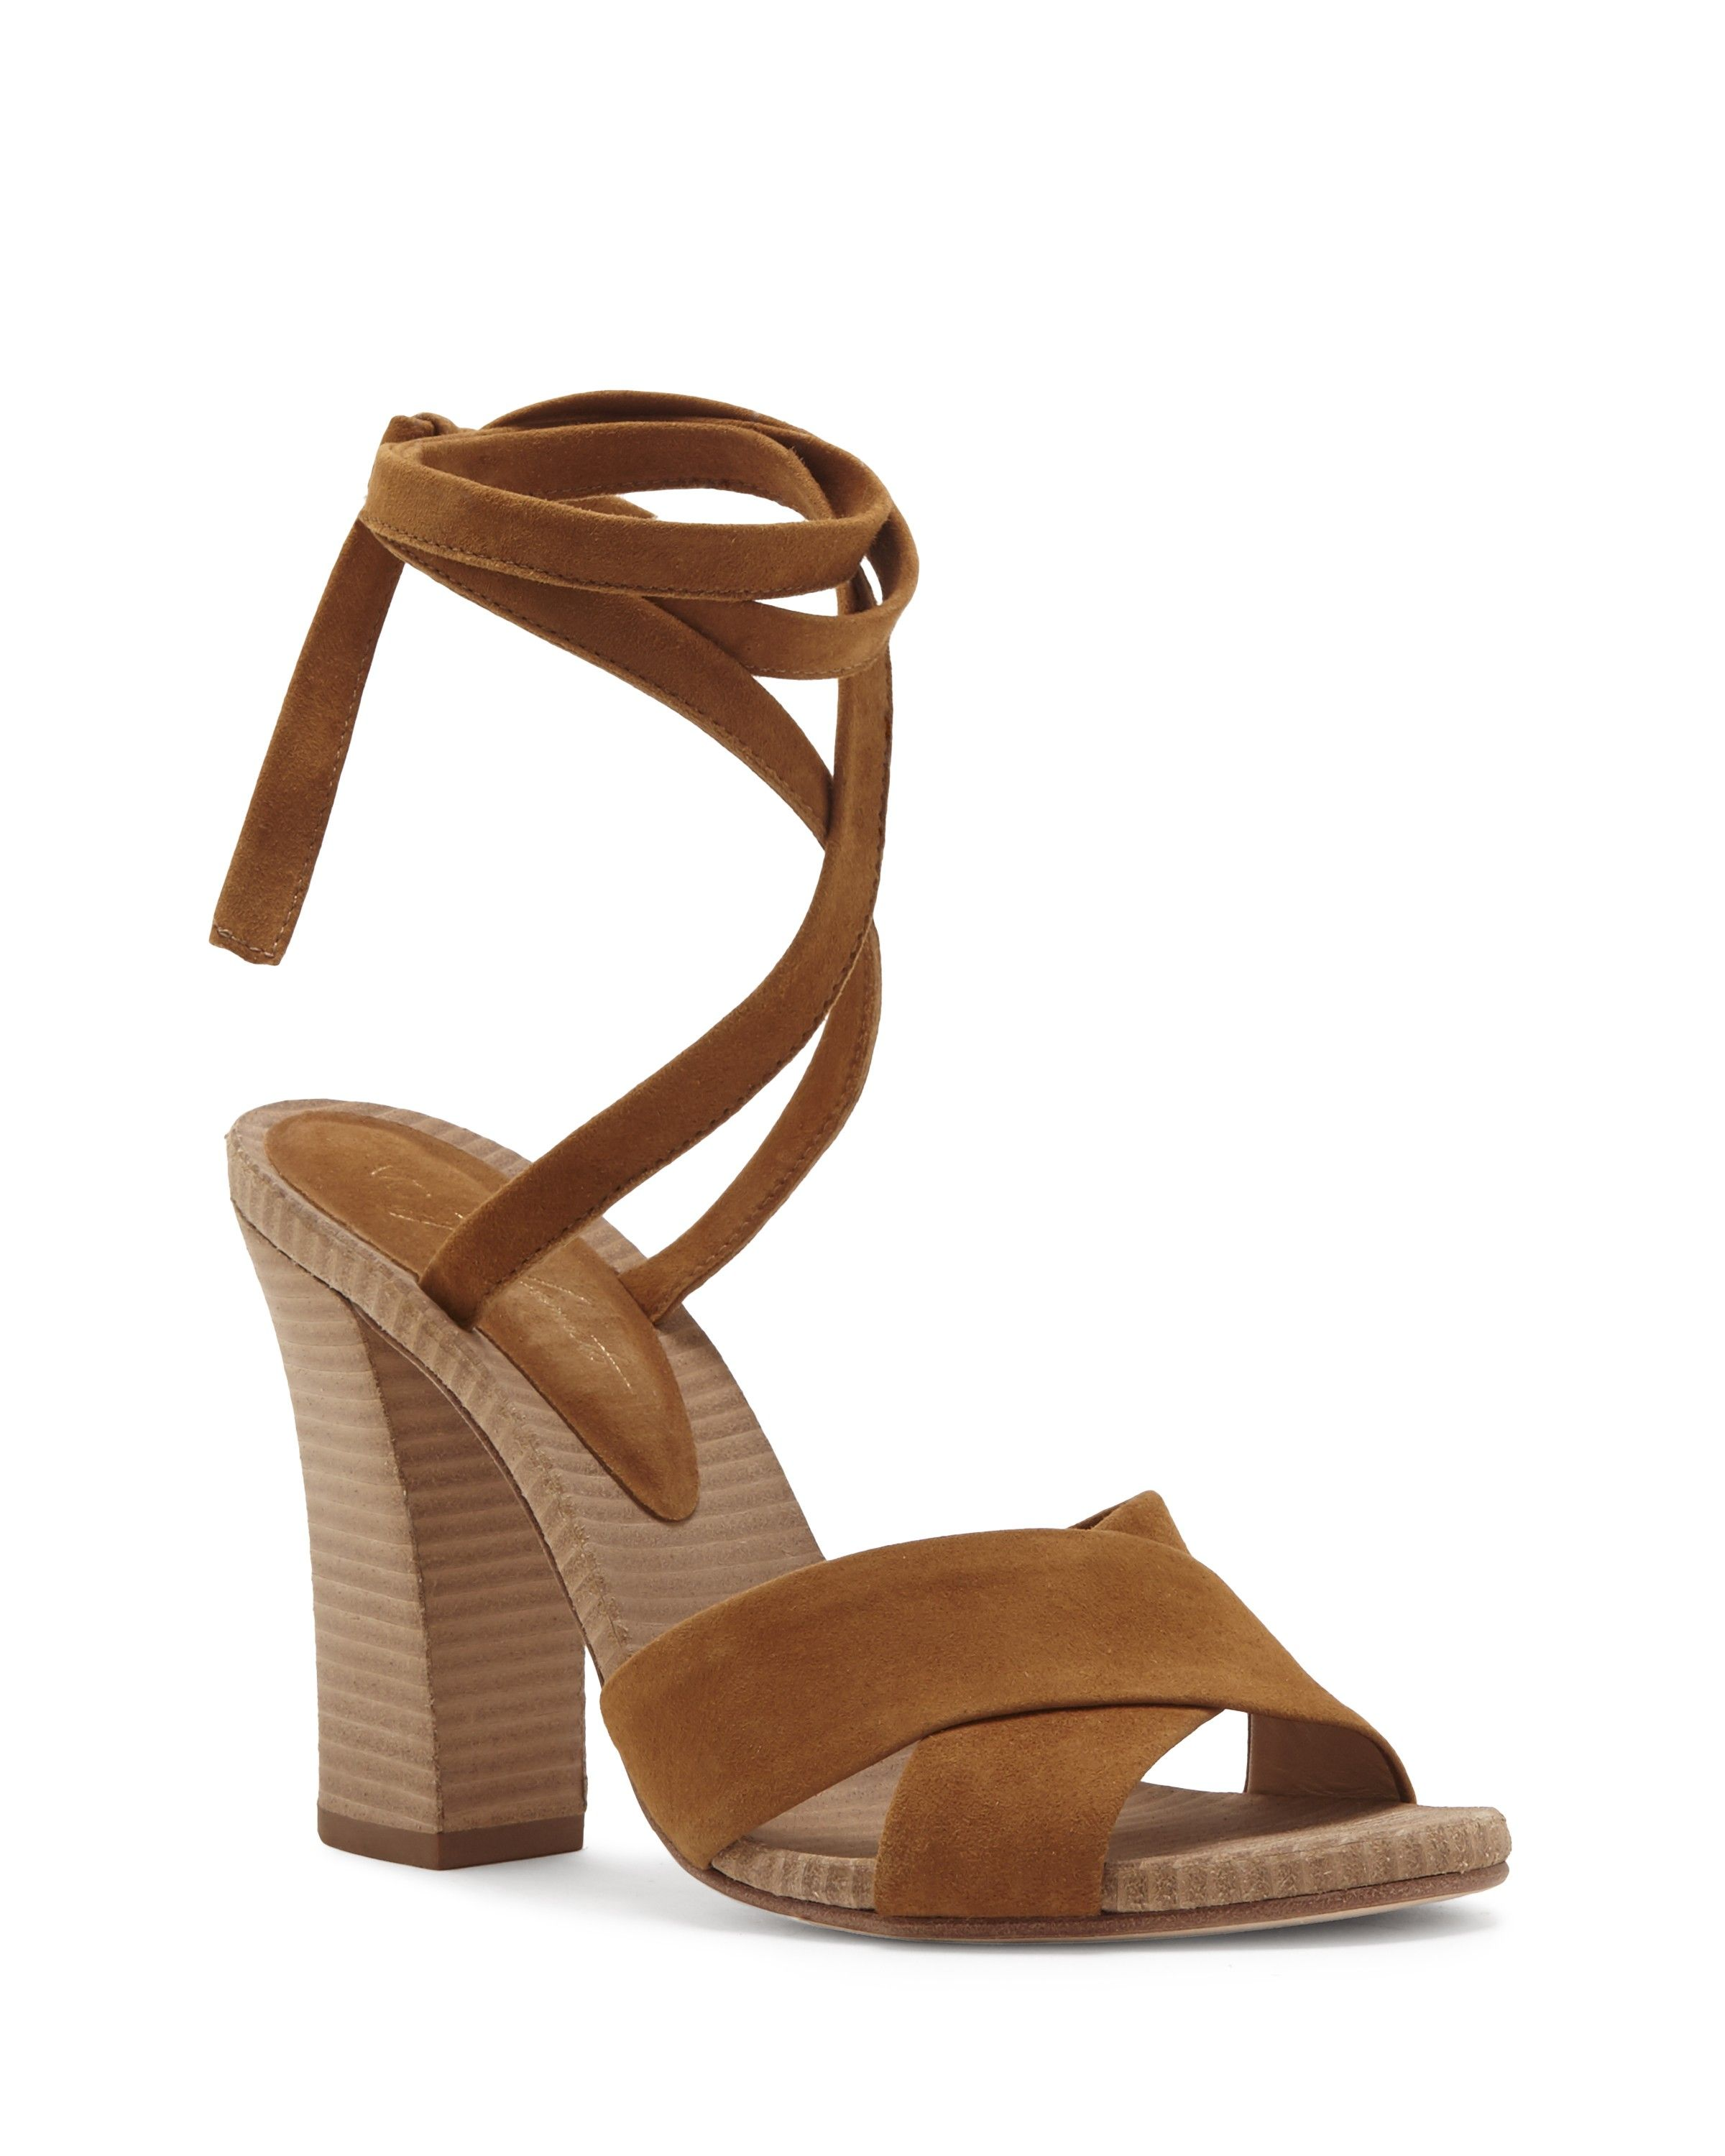 48bf248580f2 VINCE CAMUTO VC John Camuto Bailey – Lace-up Sandal.  vincecamuto  shoes